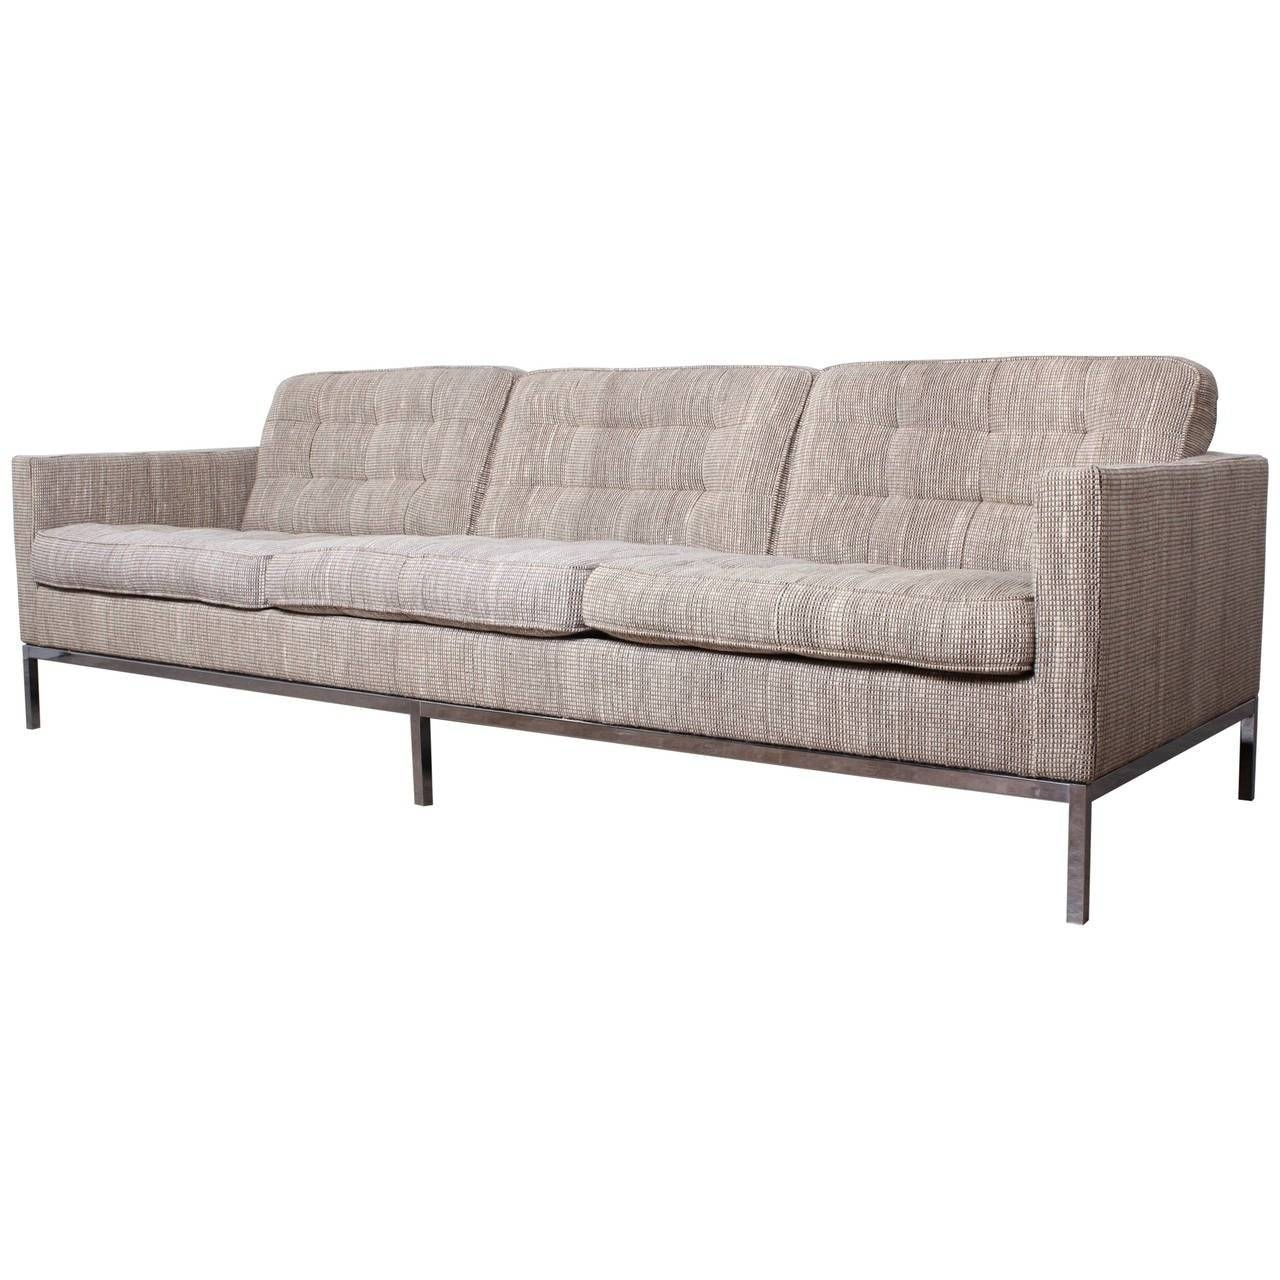 """Sofa Designedflorence Knoll In """"cato"""" Wool Upholstery For Sale throughout Florence Large Sofas (Image 21 of 30)"""